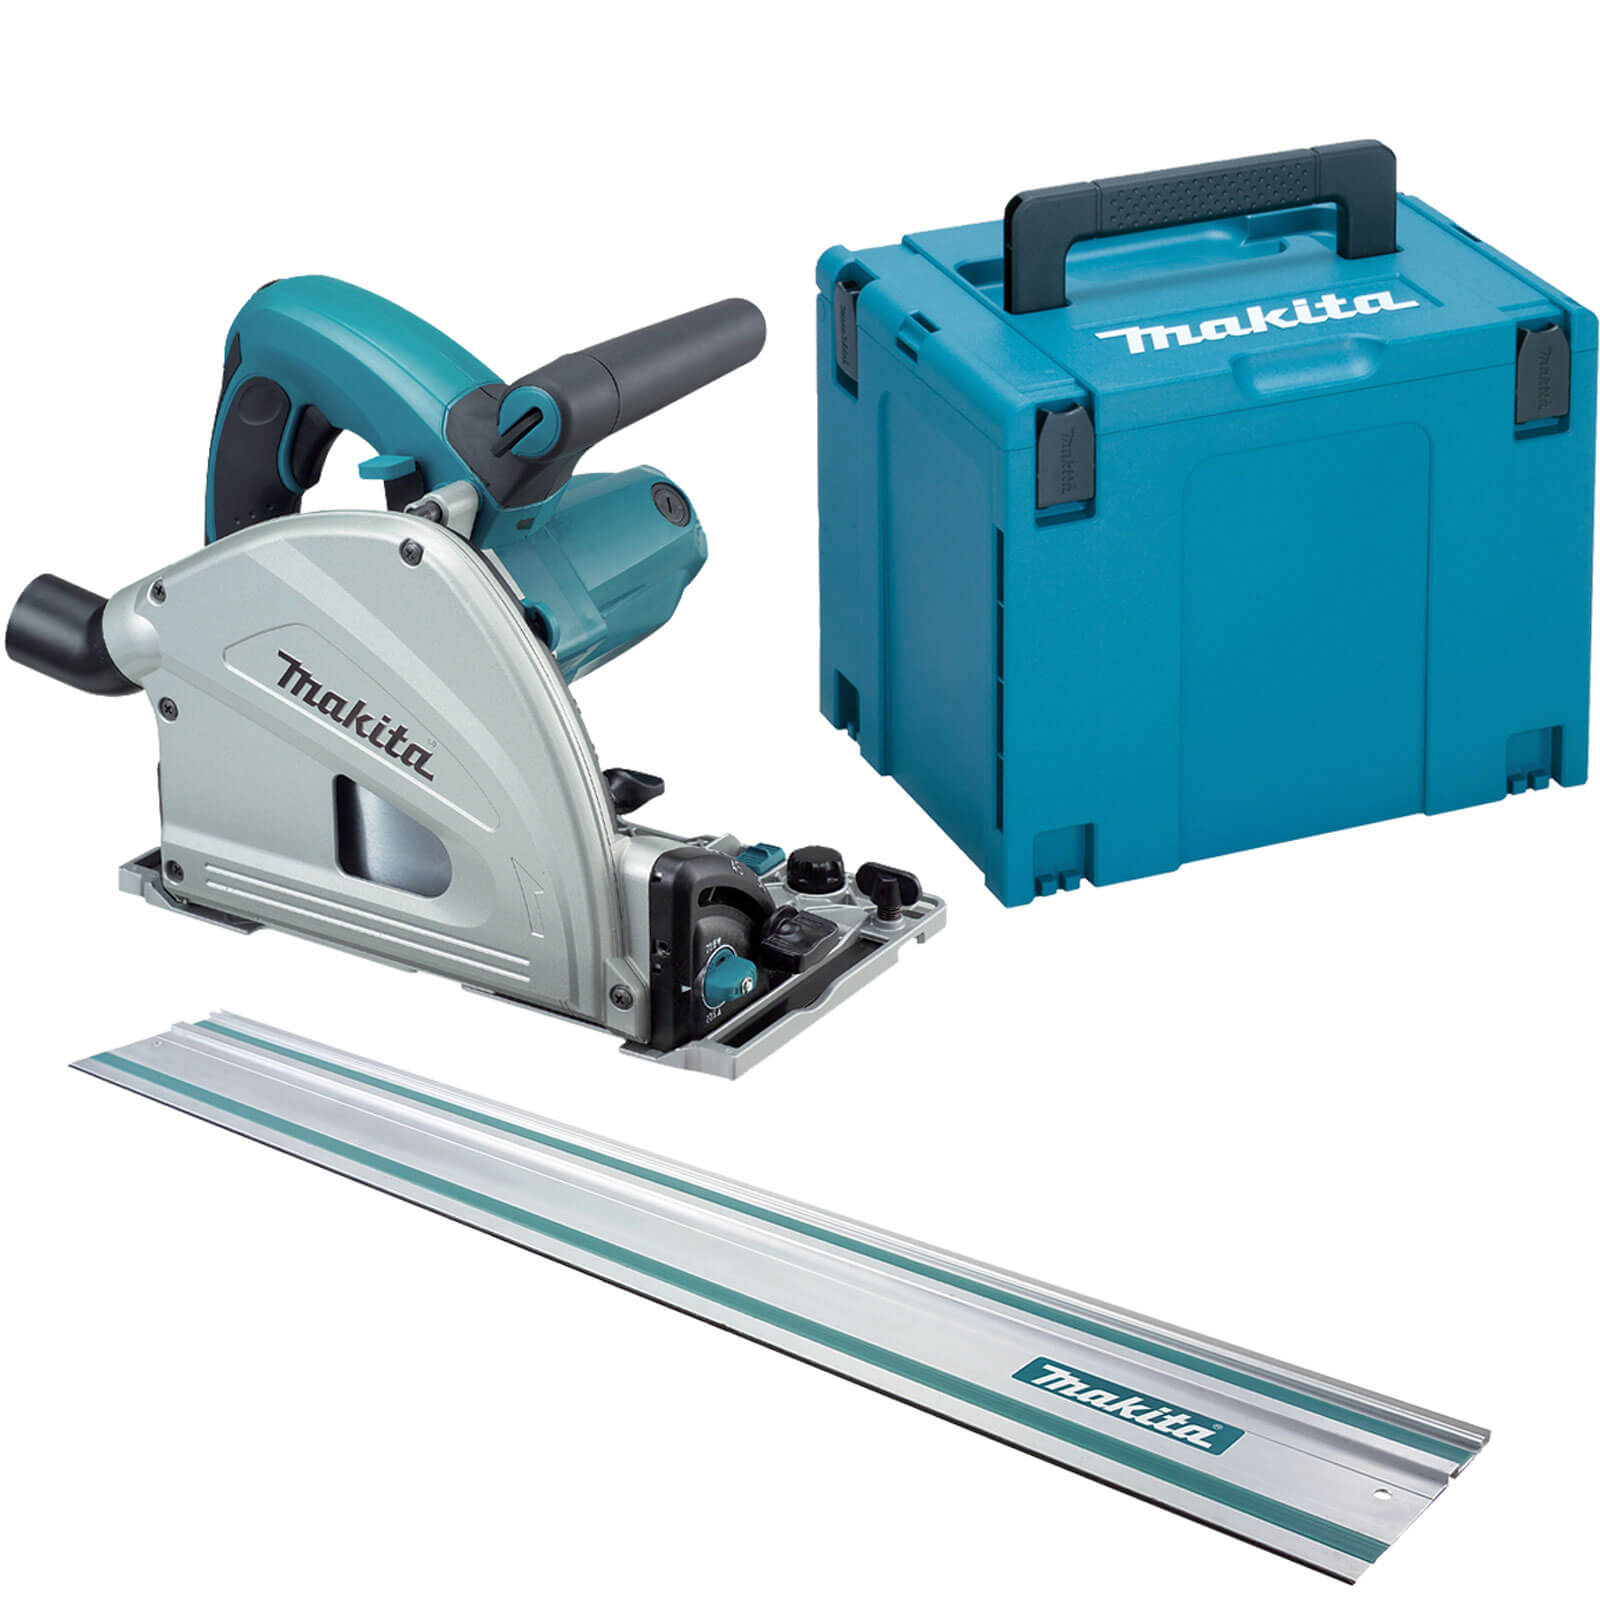 Makita Sp6000k1 Plunge Saw With 1400mm Guide Rail 240v